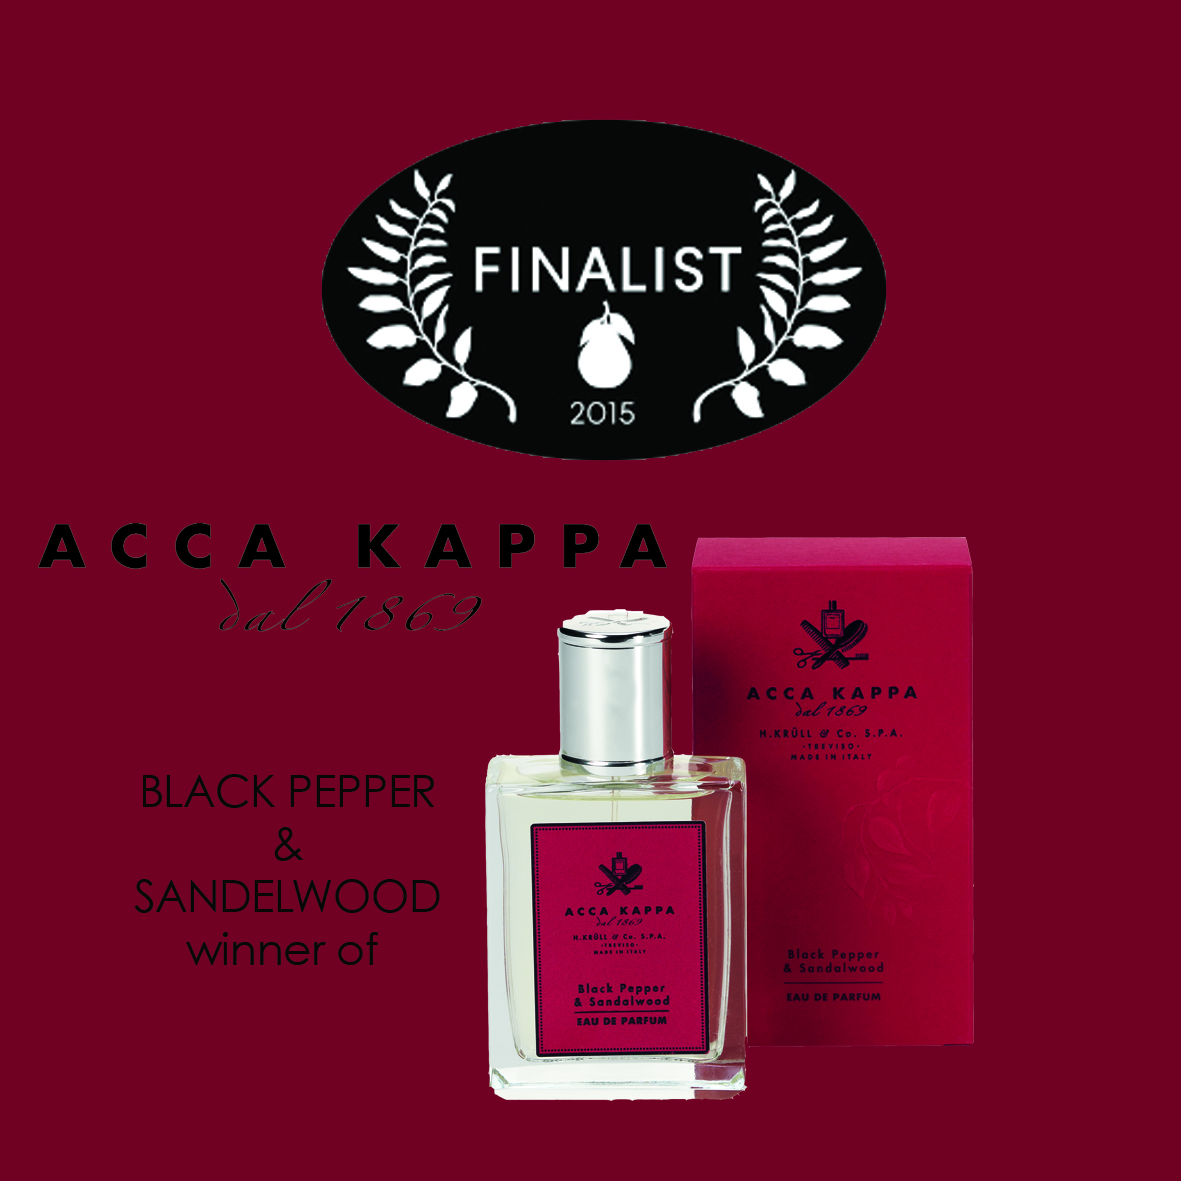 award acca kappa black pepper